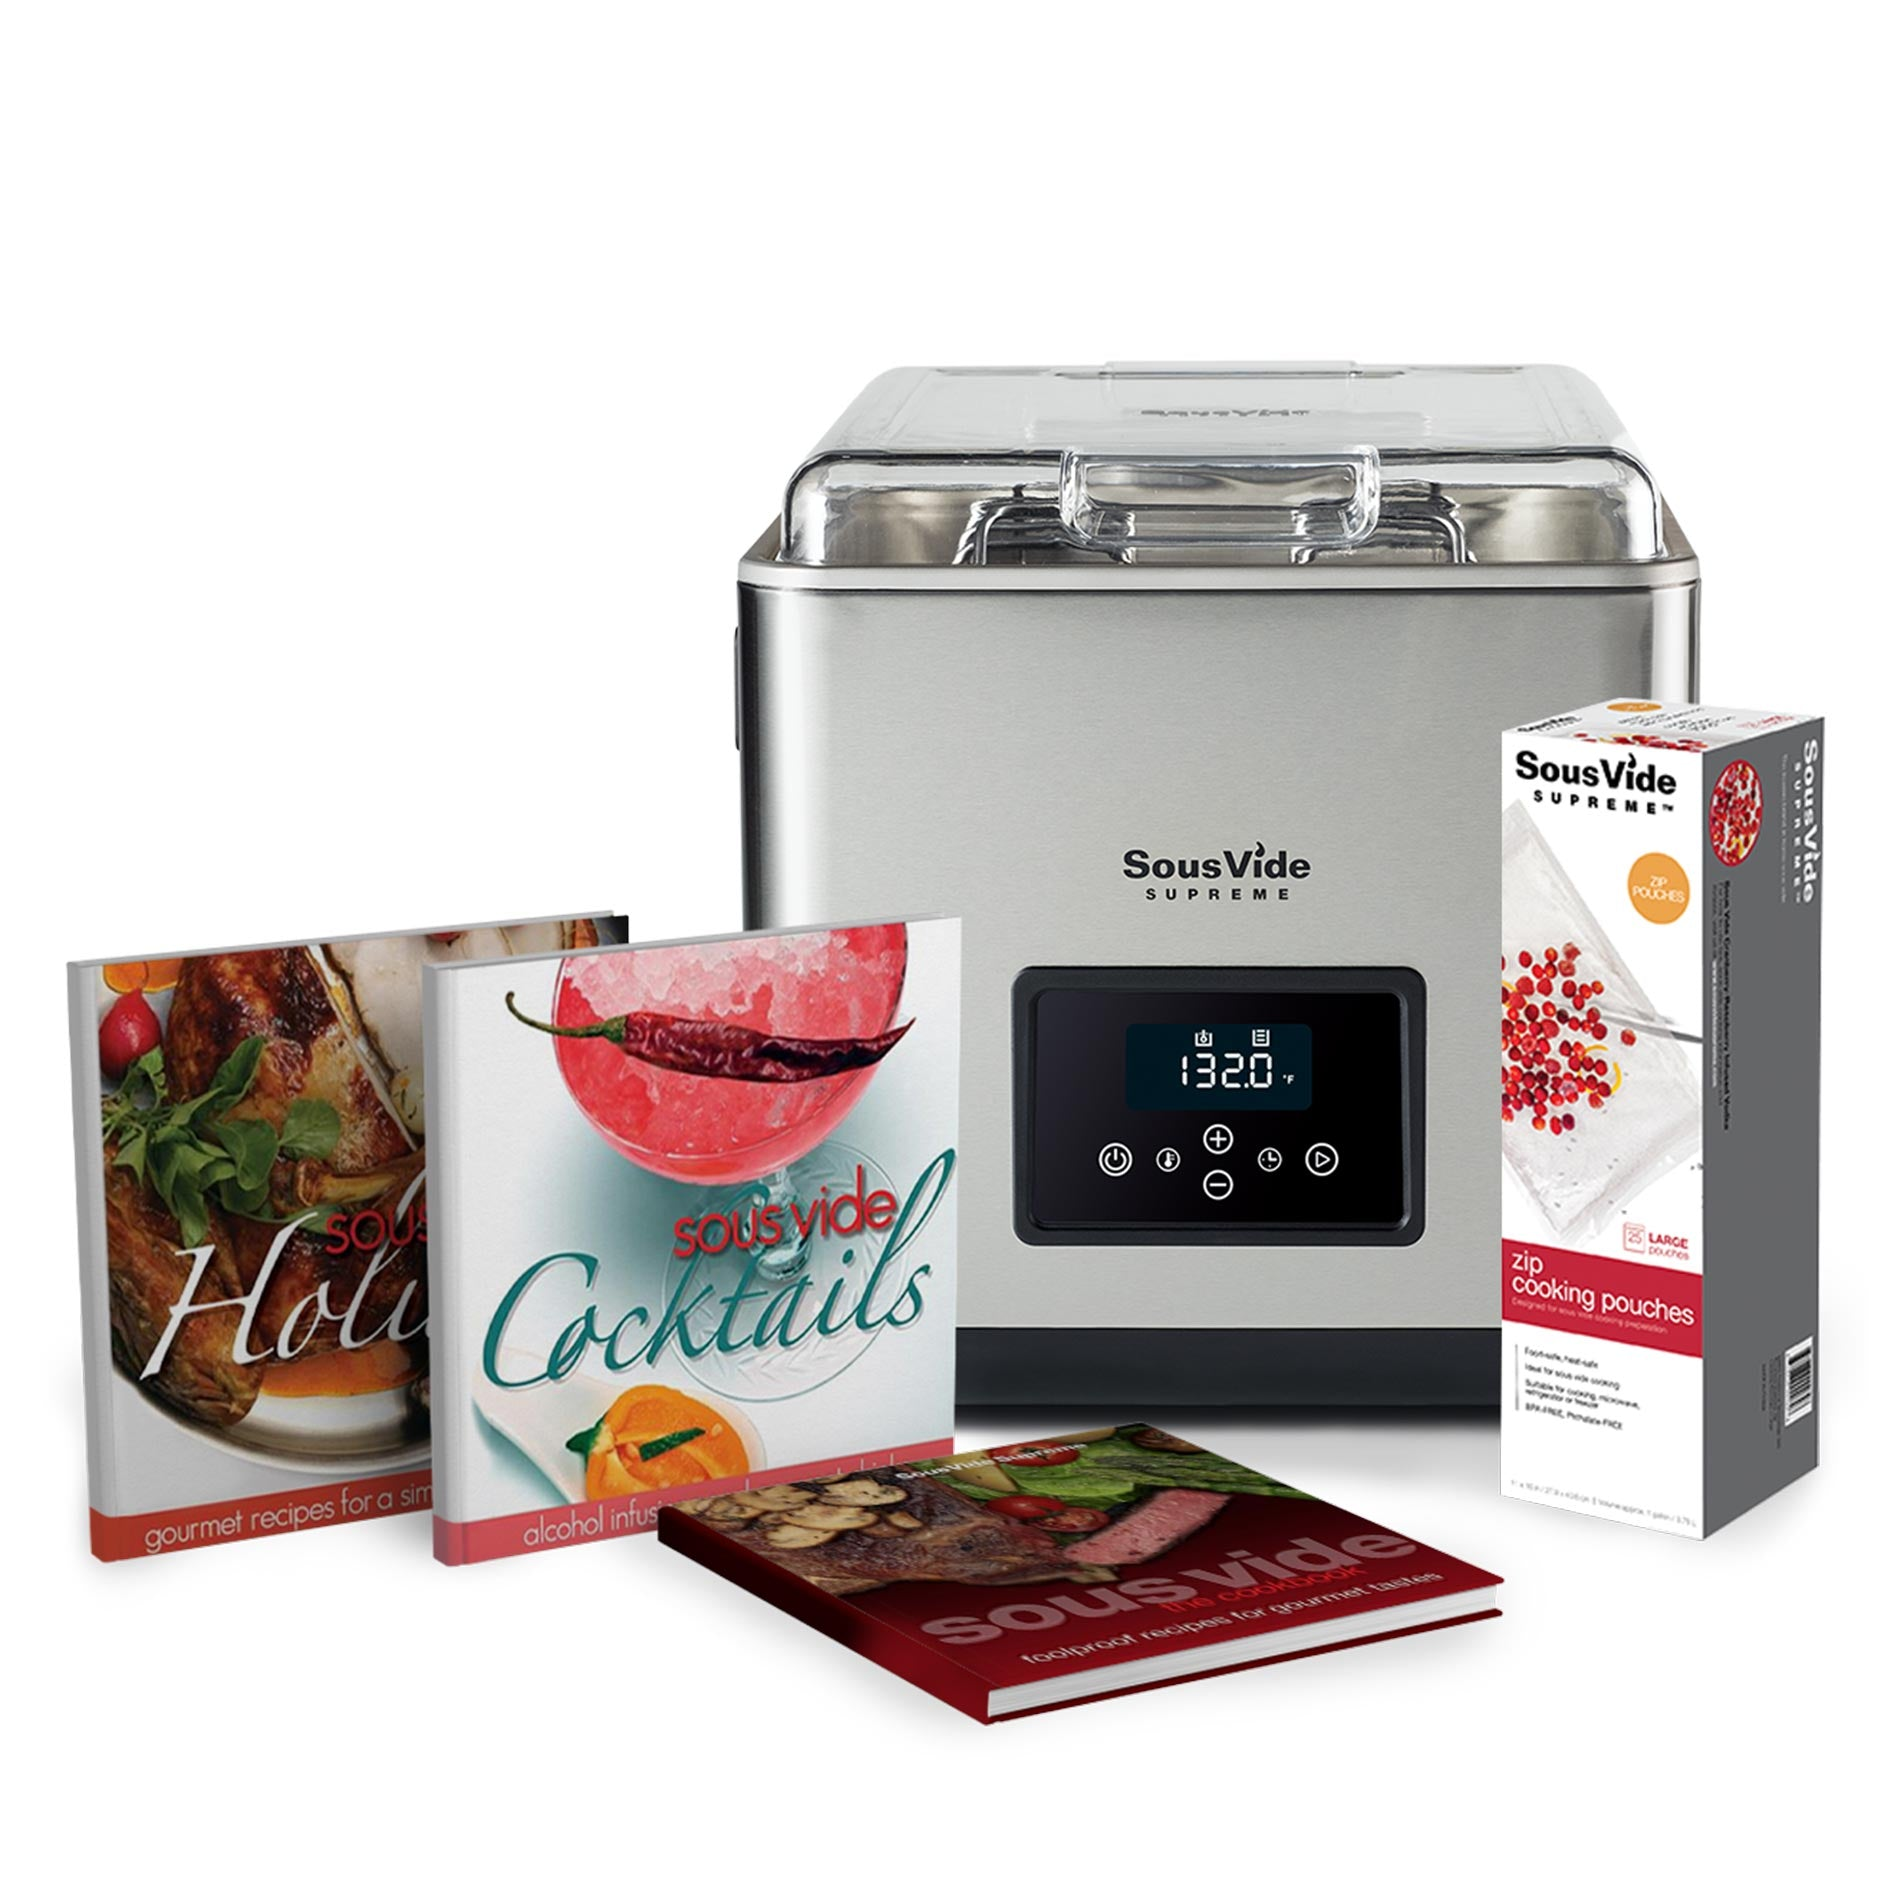 SousVide Supreme 11 Liter Touch+ Holiday Promo Pack